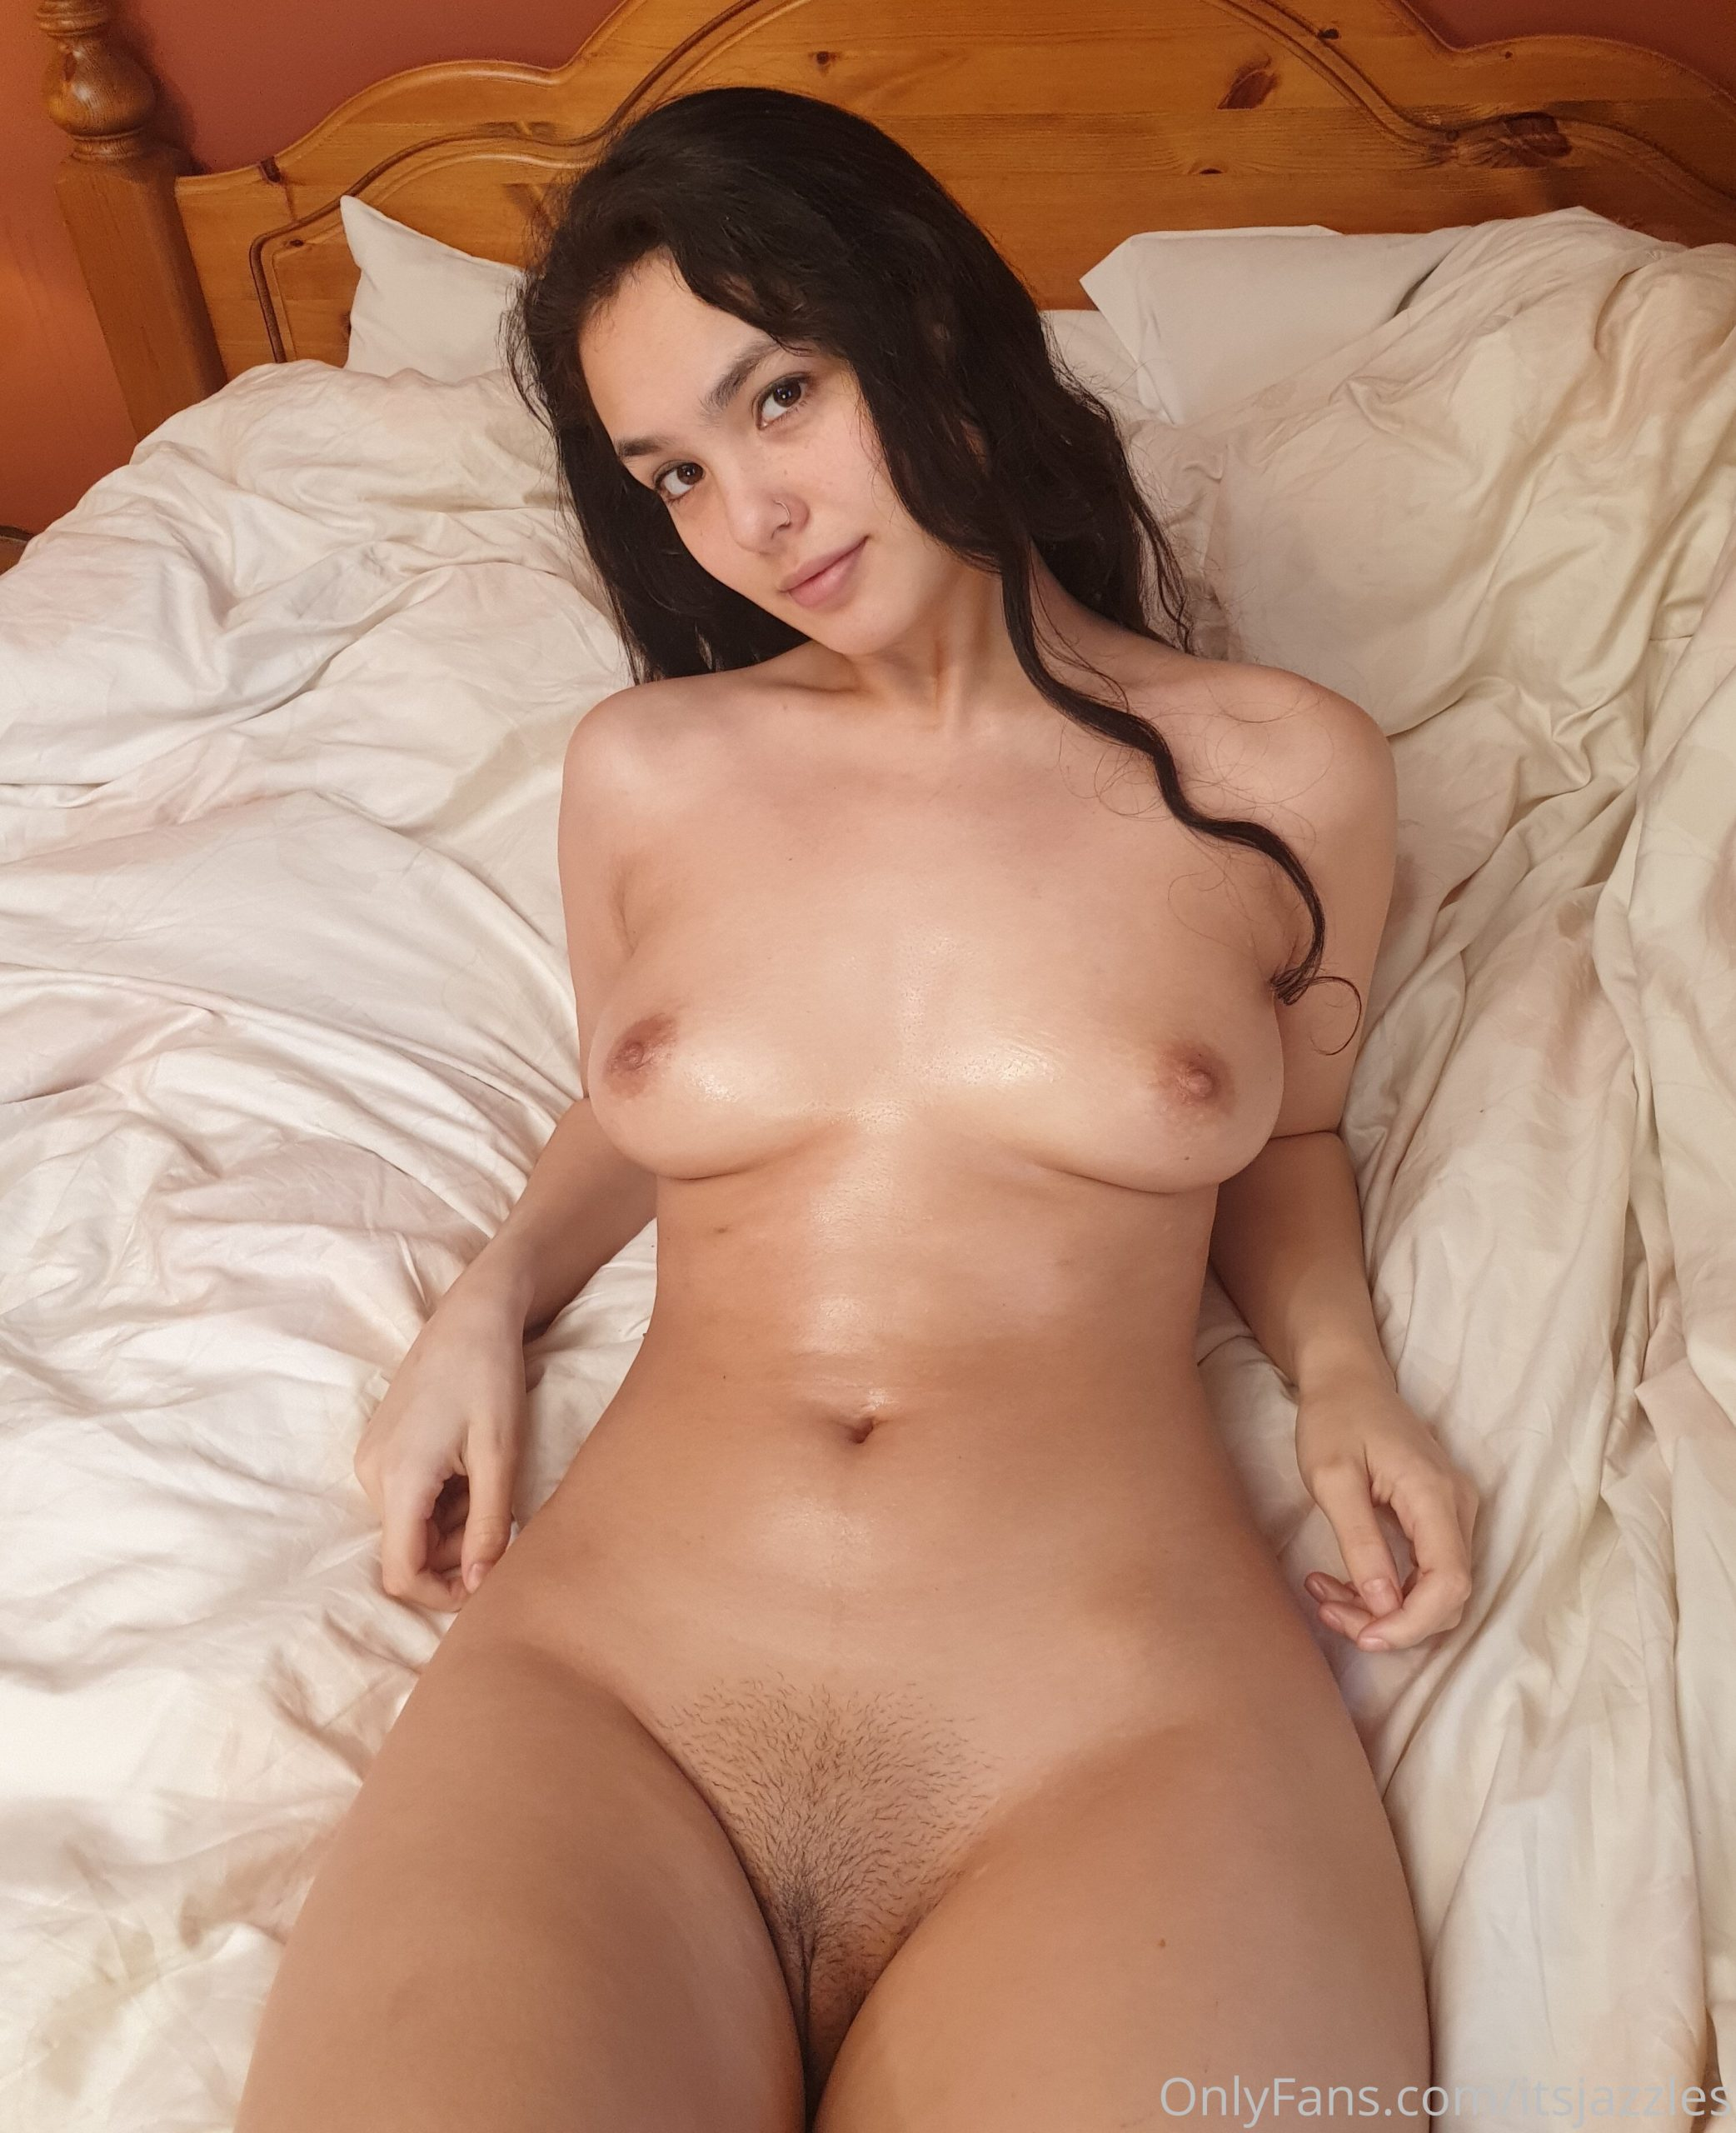 Itsjazzles, Onlyfans Nudes Leaked 0044